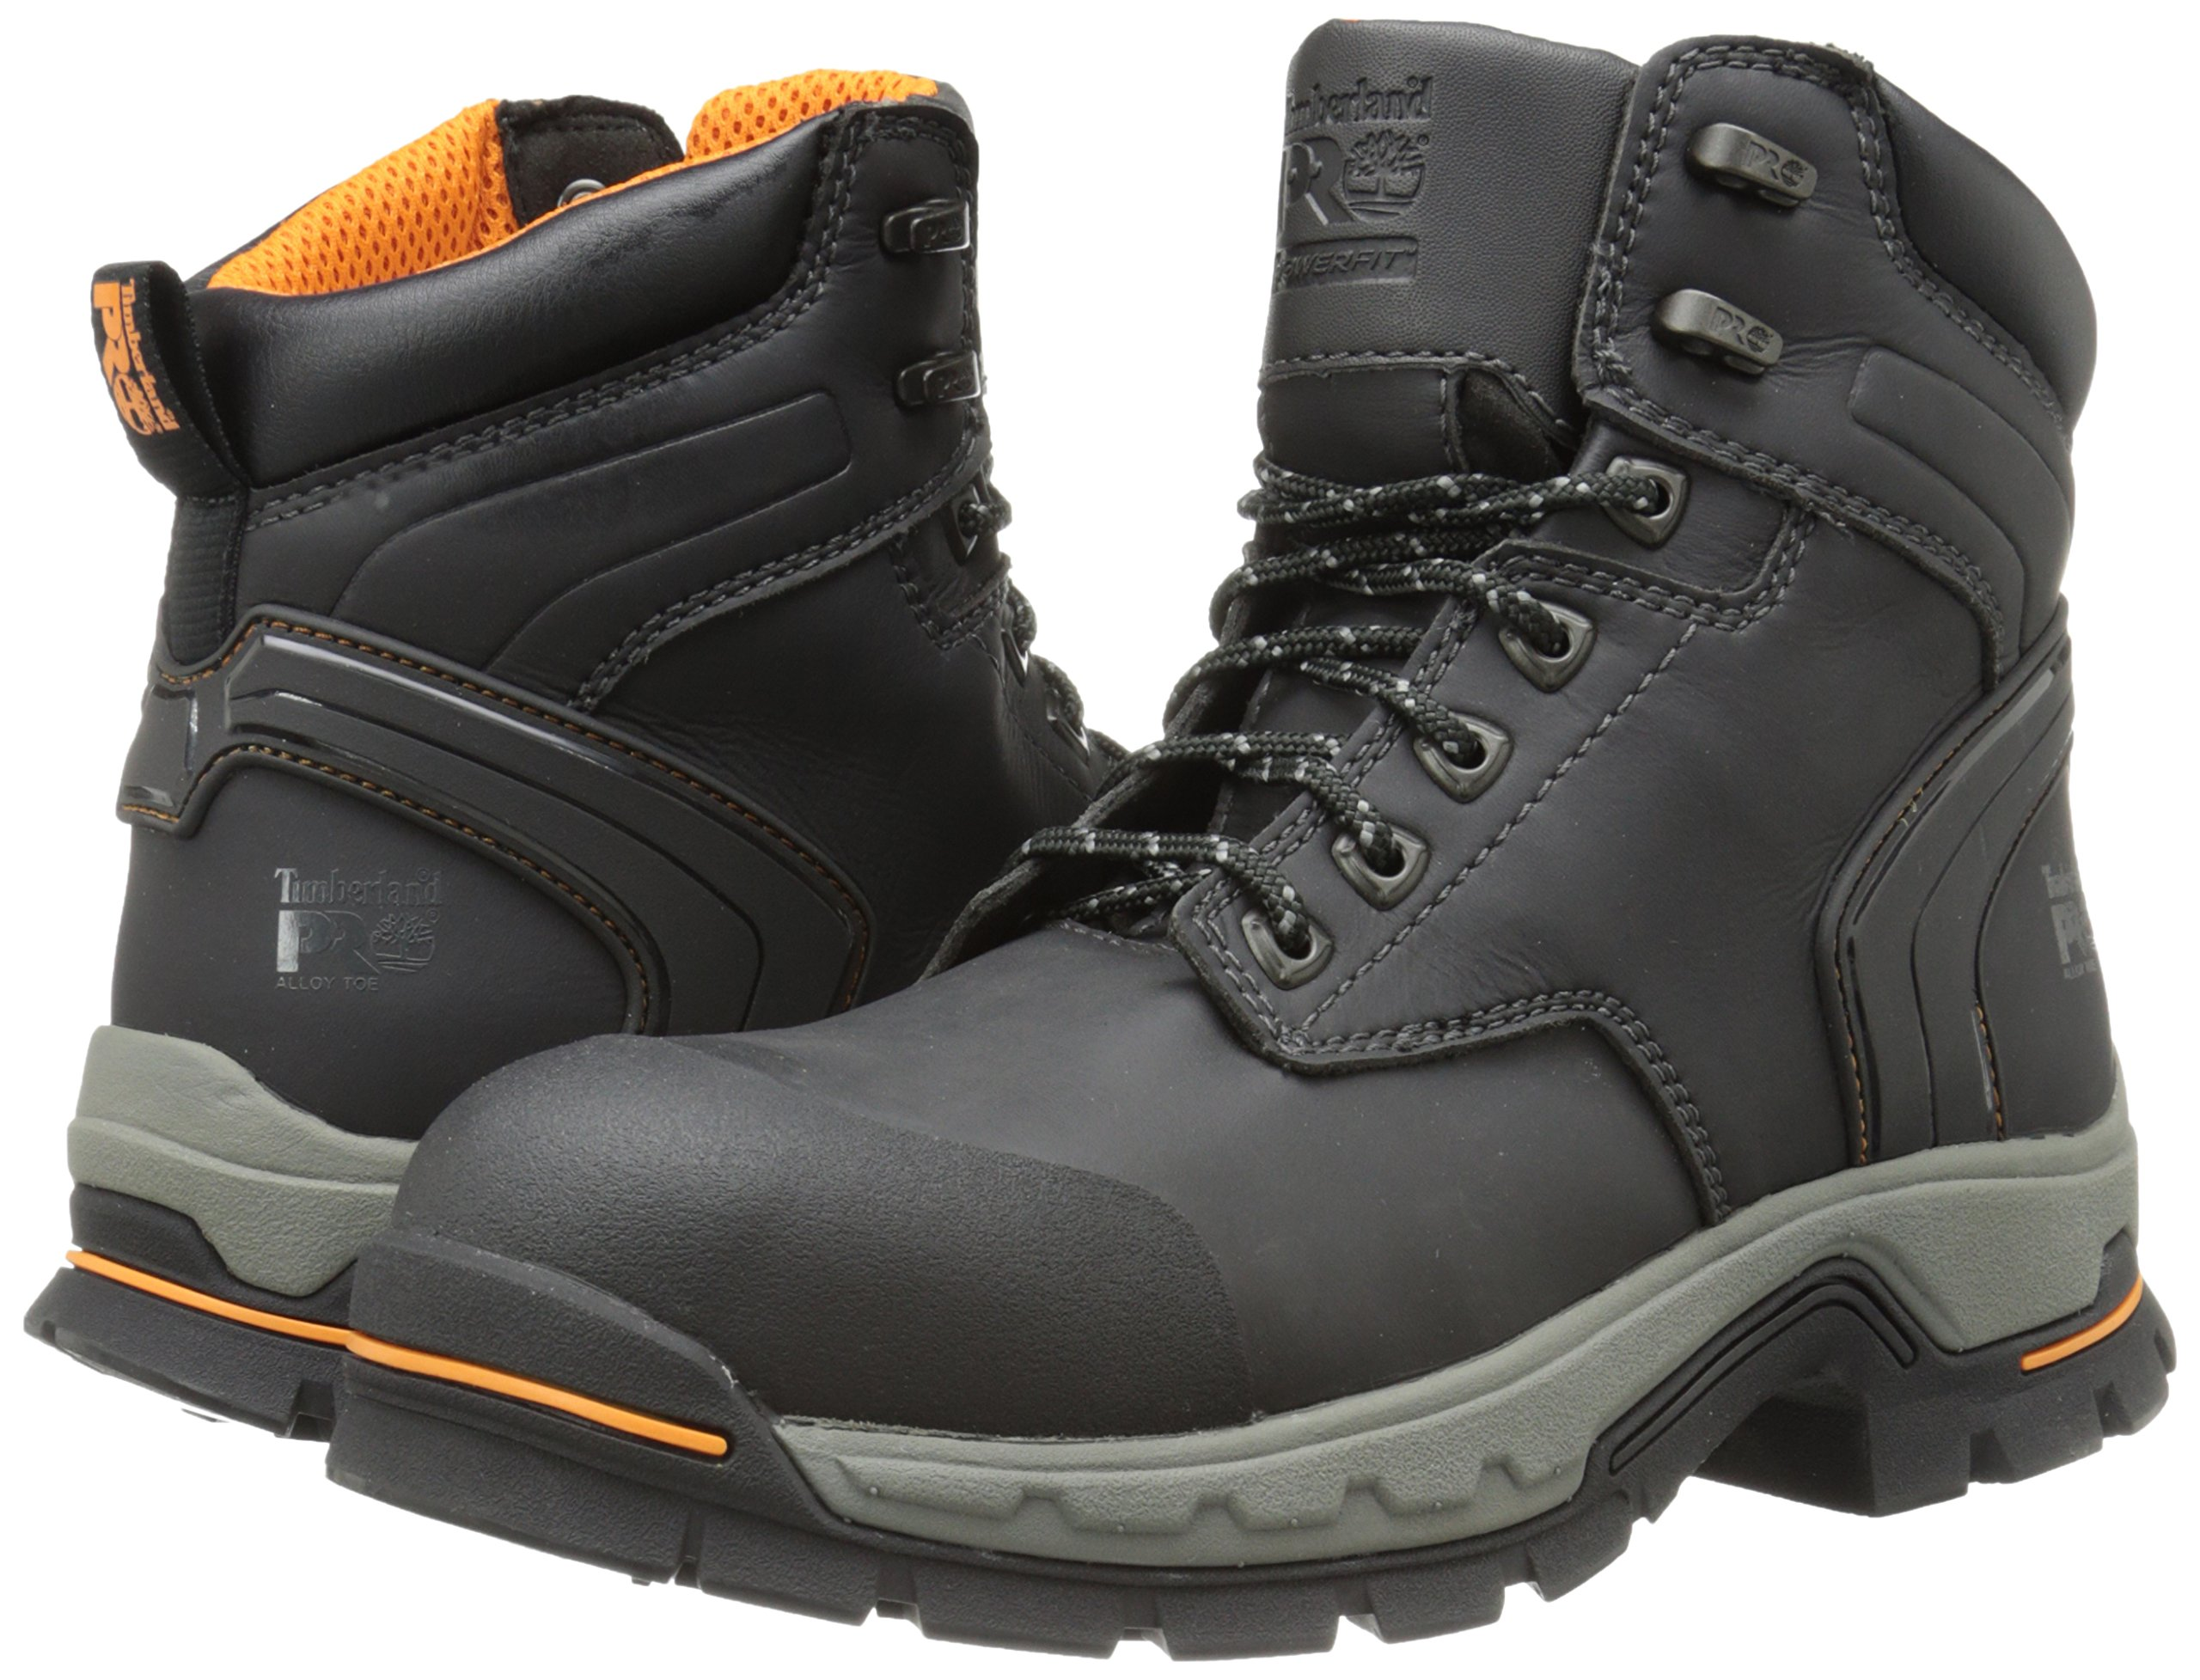 Timberland PRO Men's 6 Inch Stockdale Grip Max Alloy Toe Work and Hunt Boot, Black Microfiber, 5.5 W US by Timberland PRO (Image #6)